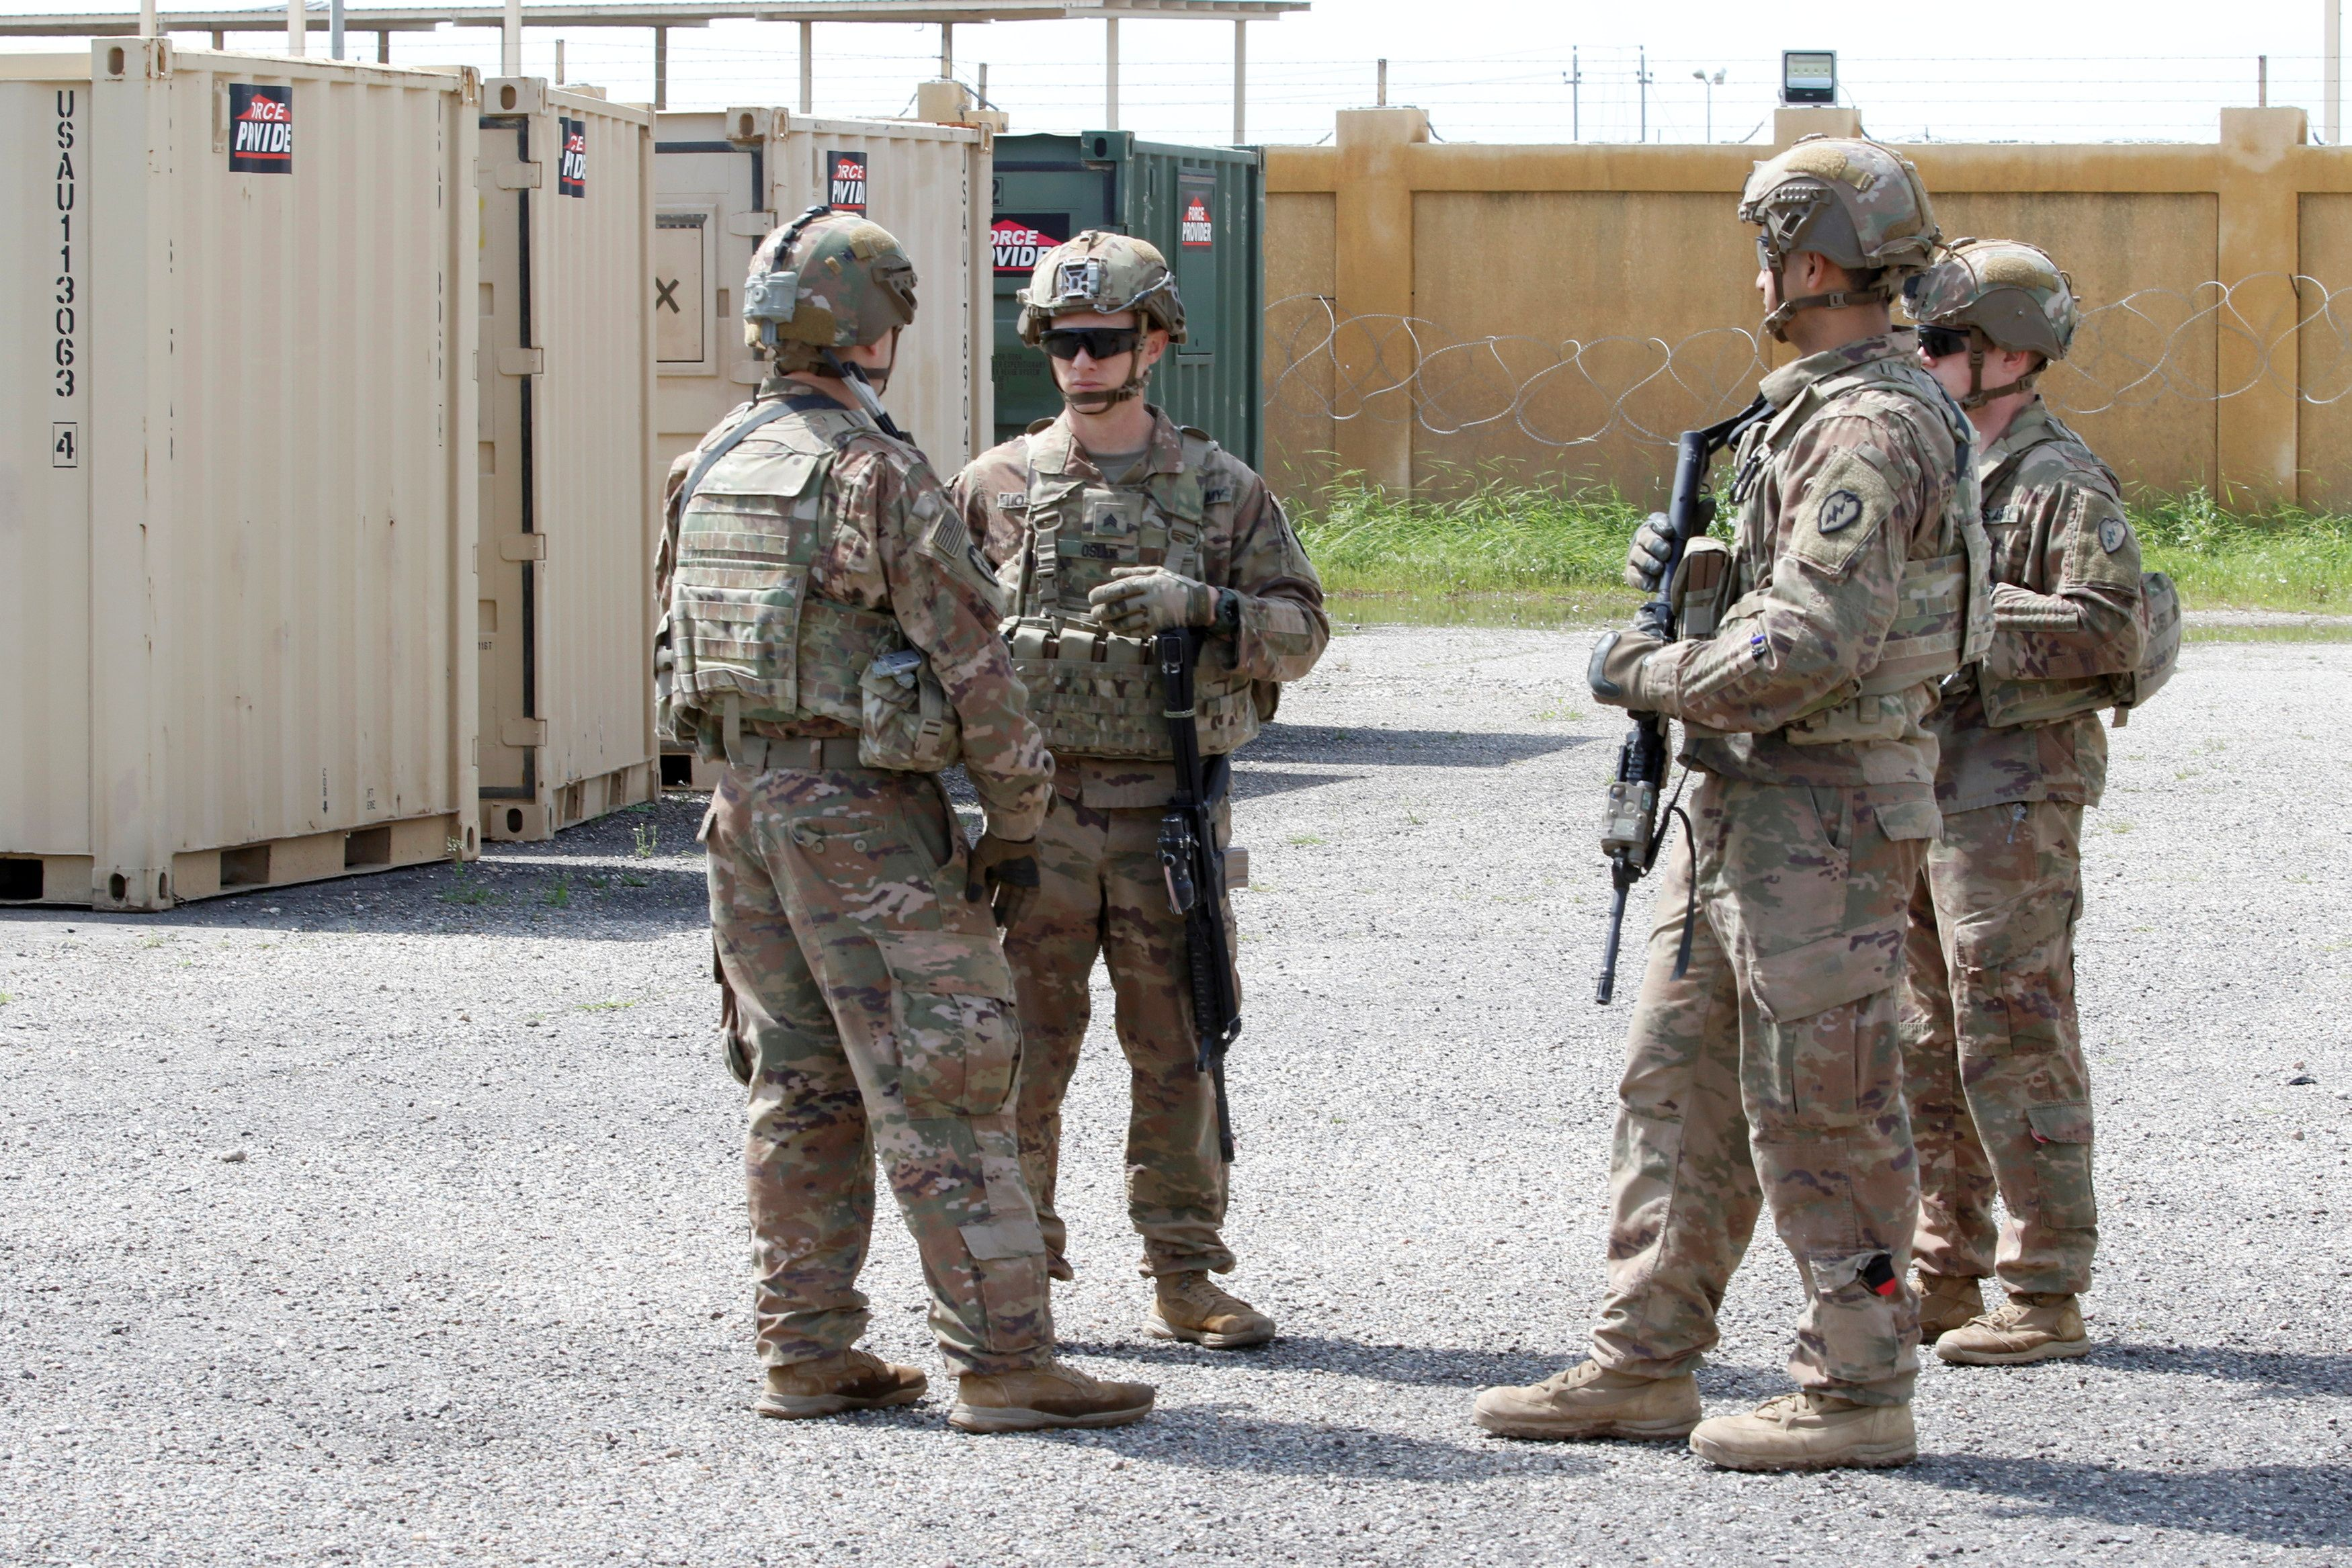 U.S. soldiers are seen before a handover ceremony of K-1 airbase from U.S.-led coalition forces to Iraqi security forces, in Kirkuk governorate, Iraq March 29, 2020. REUTERS/Ako Rasheed/File Photo